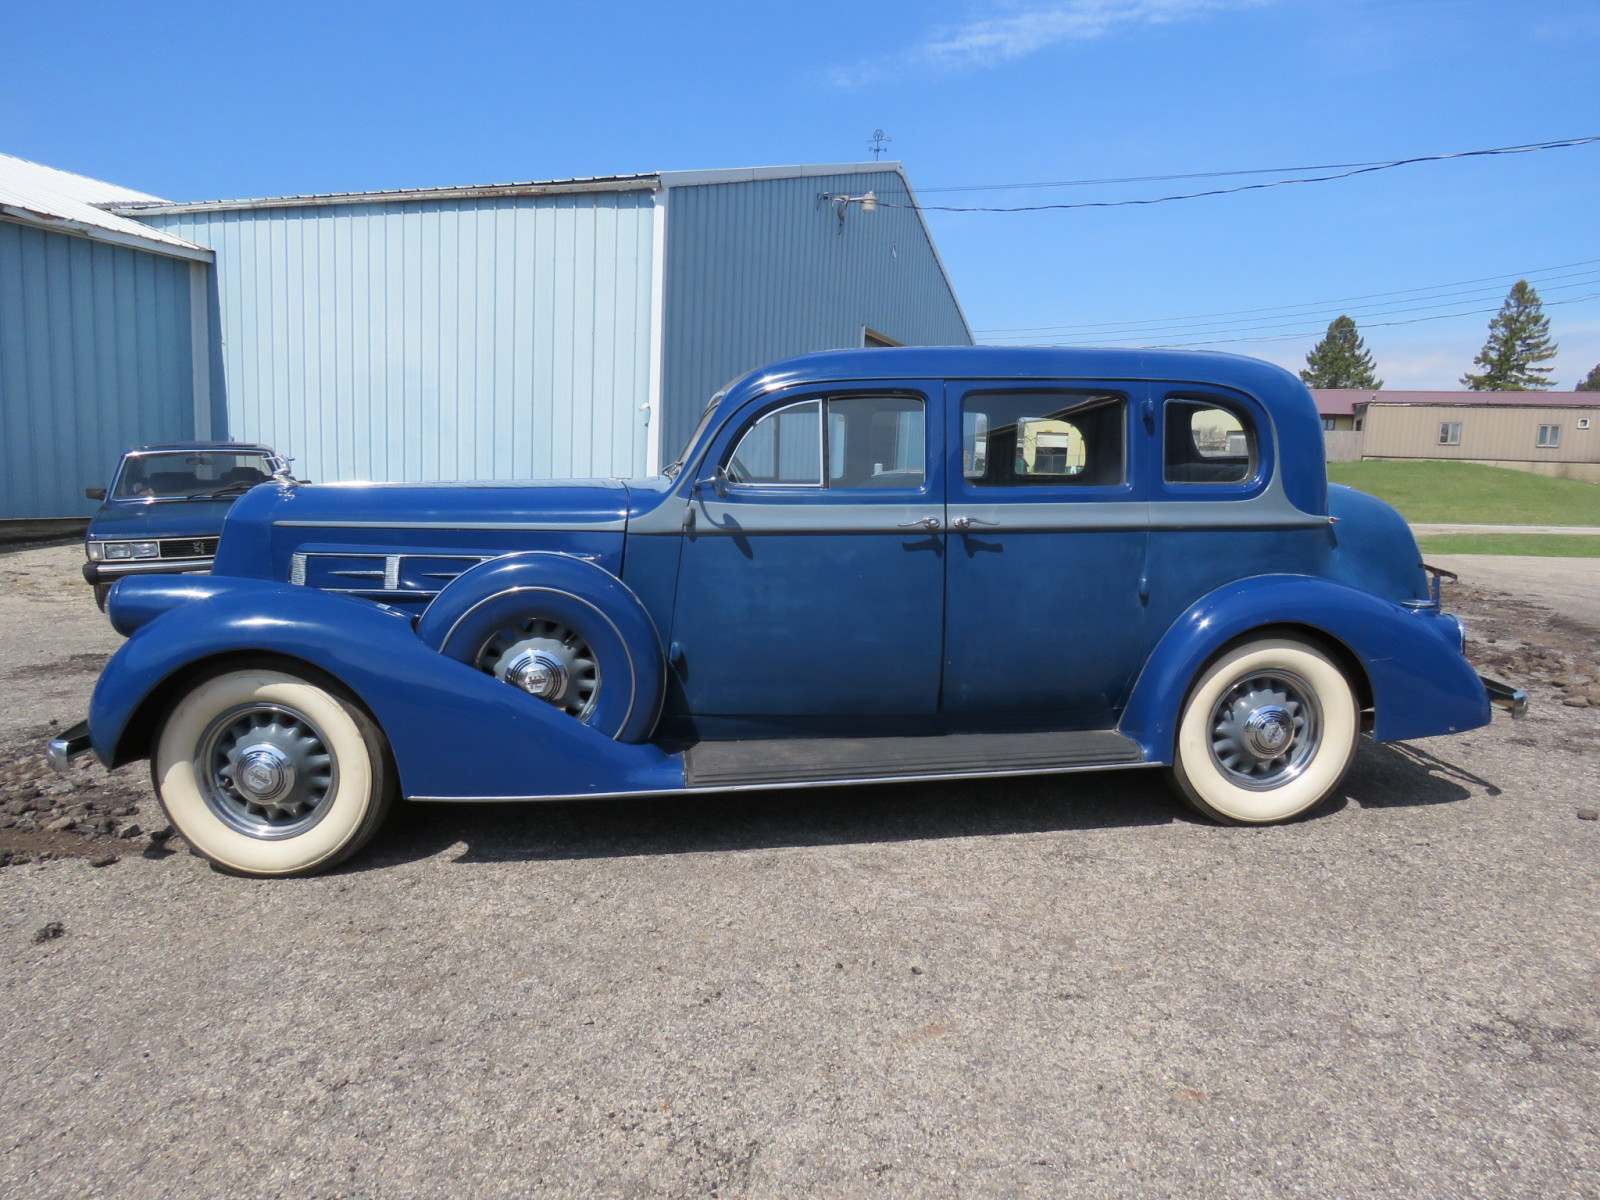 1936 Pierce Arrow V12  Series 1602 5 Passenger Sedan - Image 12